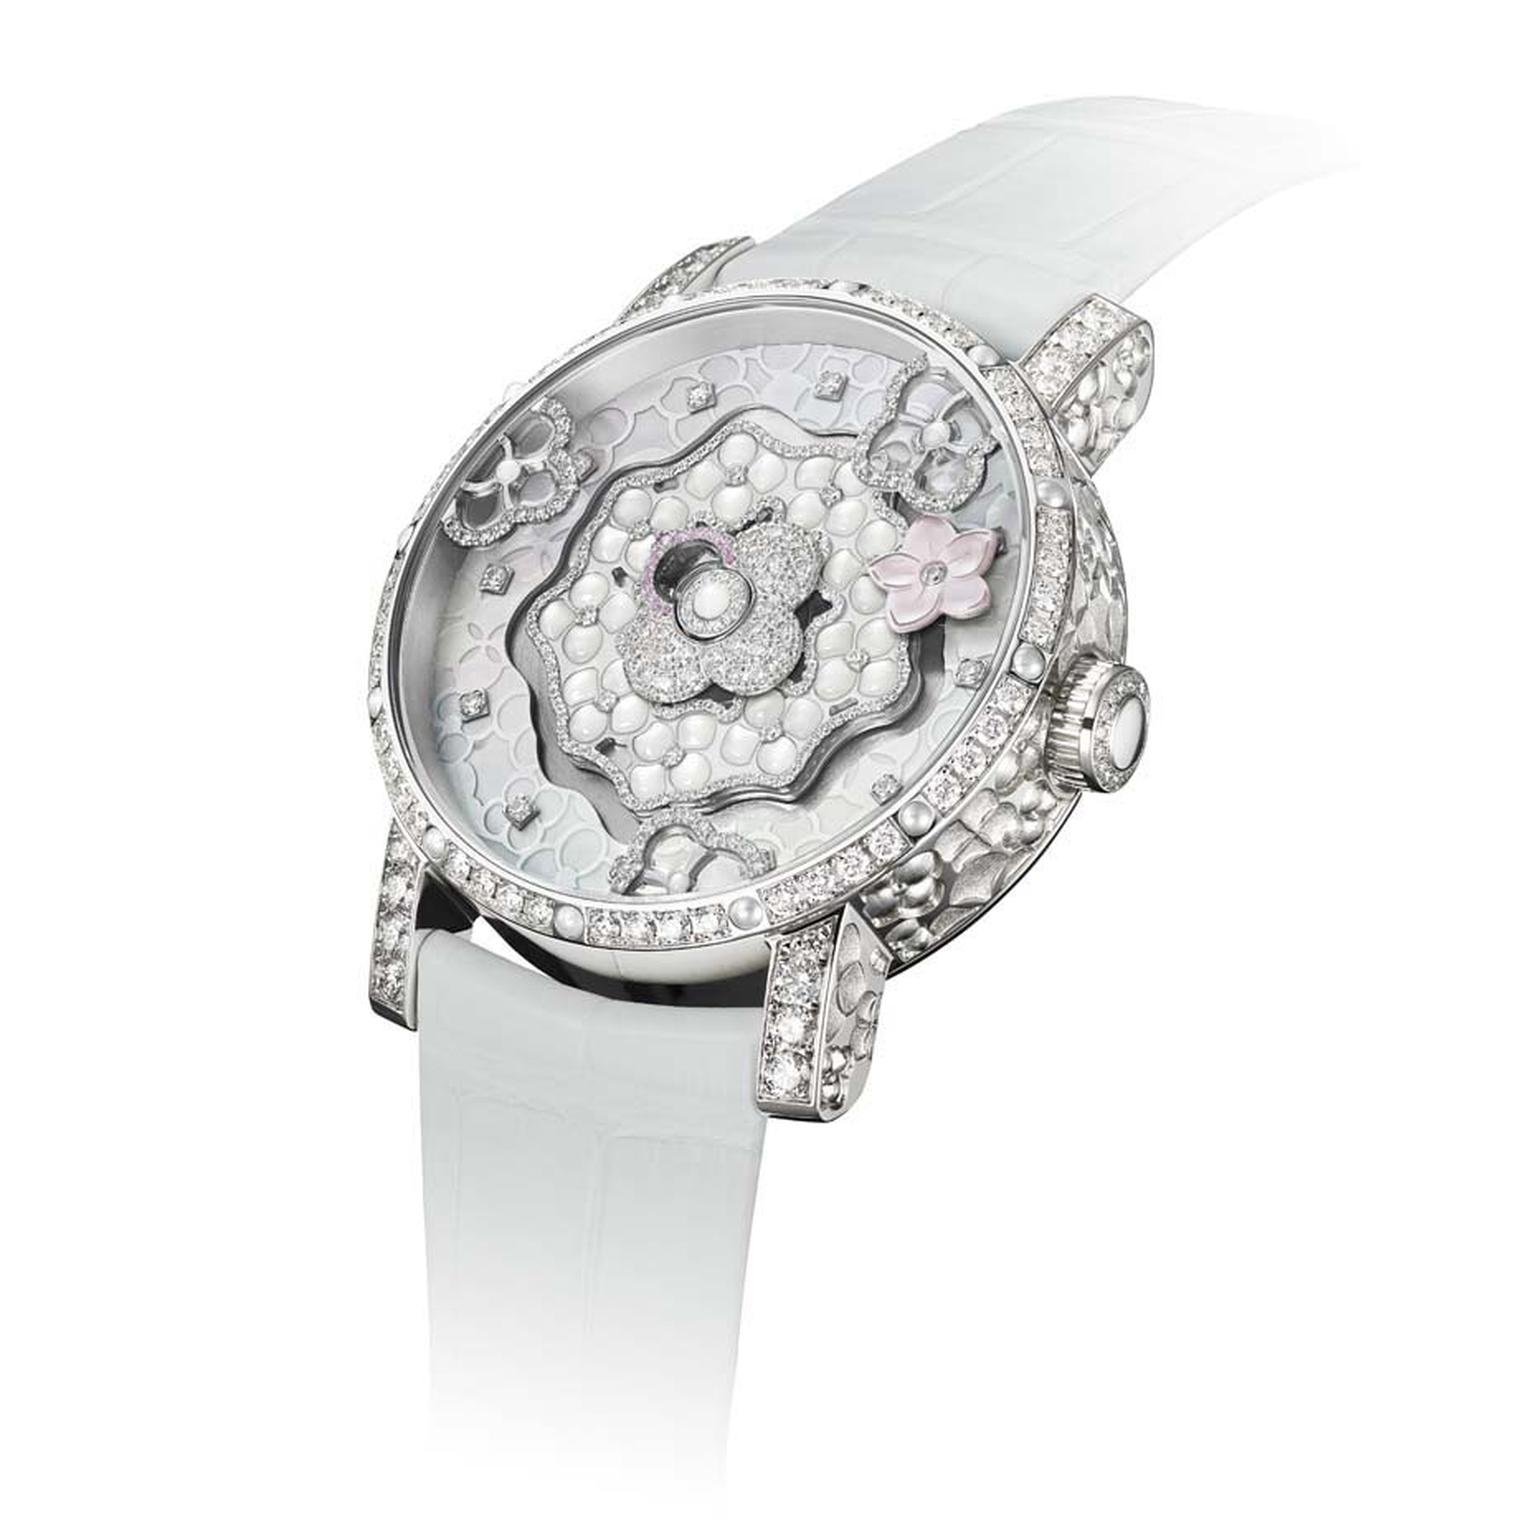 Chaumet watches has chosen the hydrangea flower as the star of its Hortensia Creative Complication, which displays the hours and minutes with mobile hydrangeas on the dial.